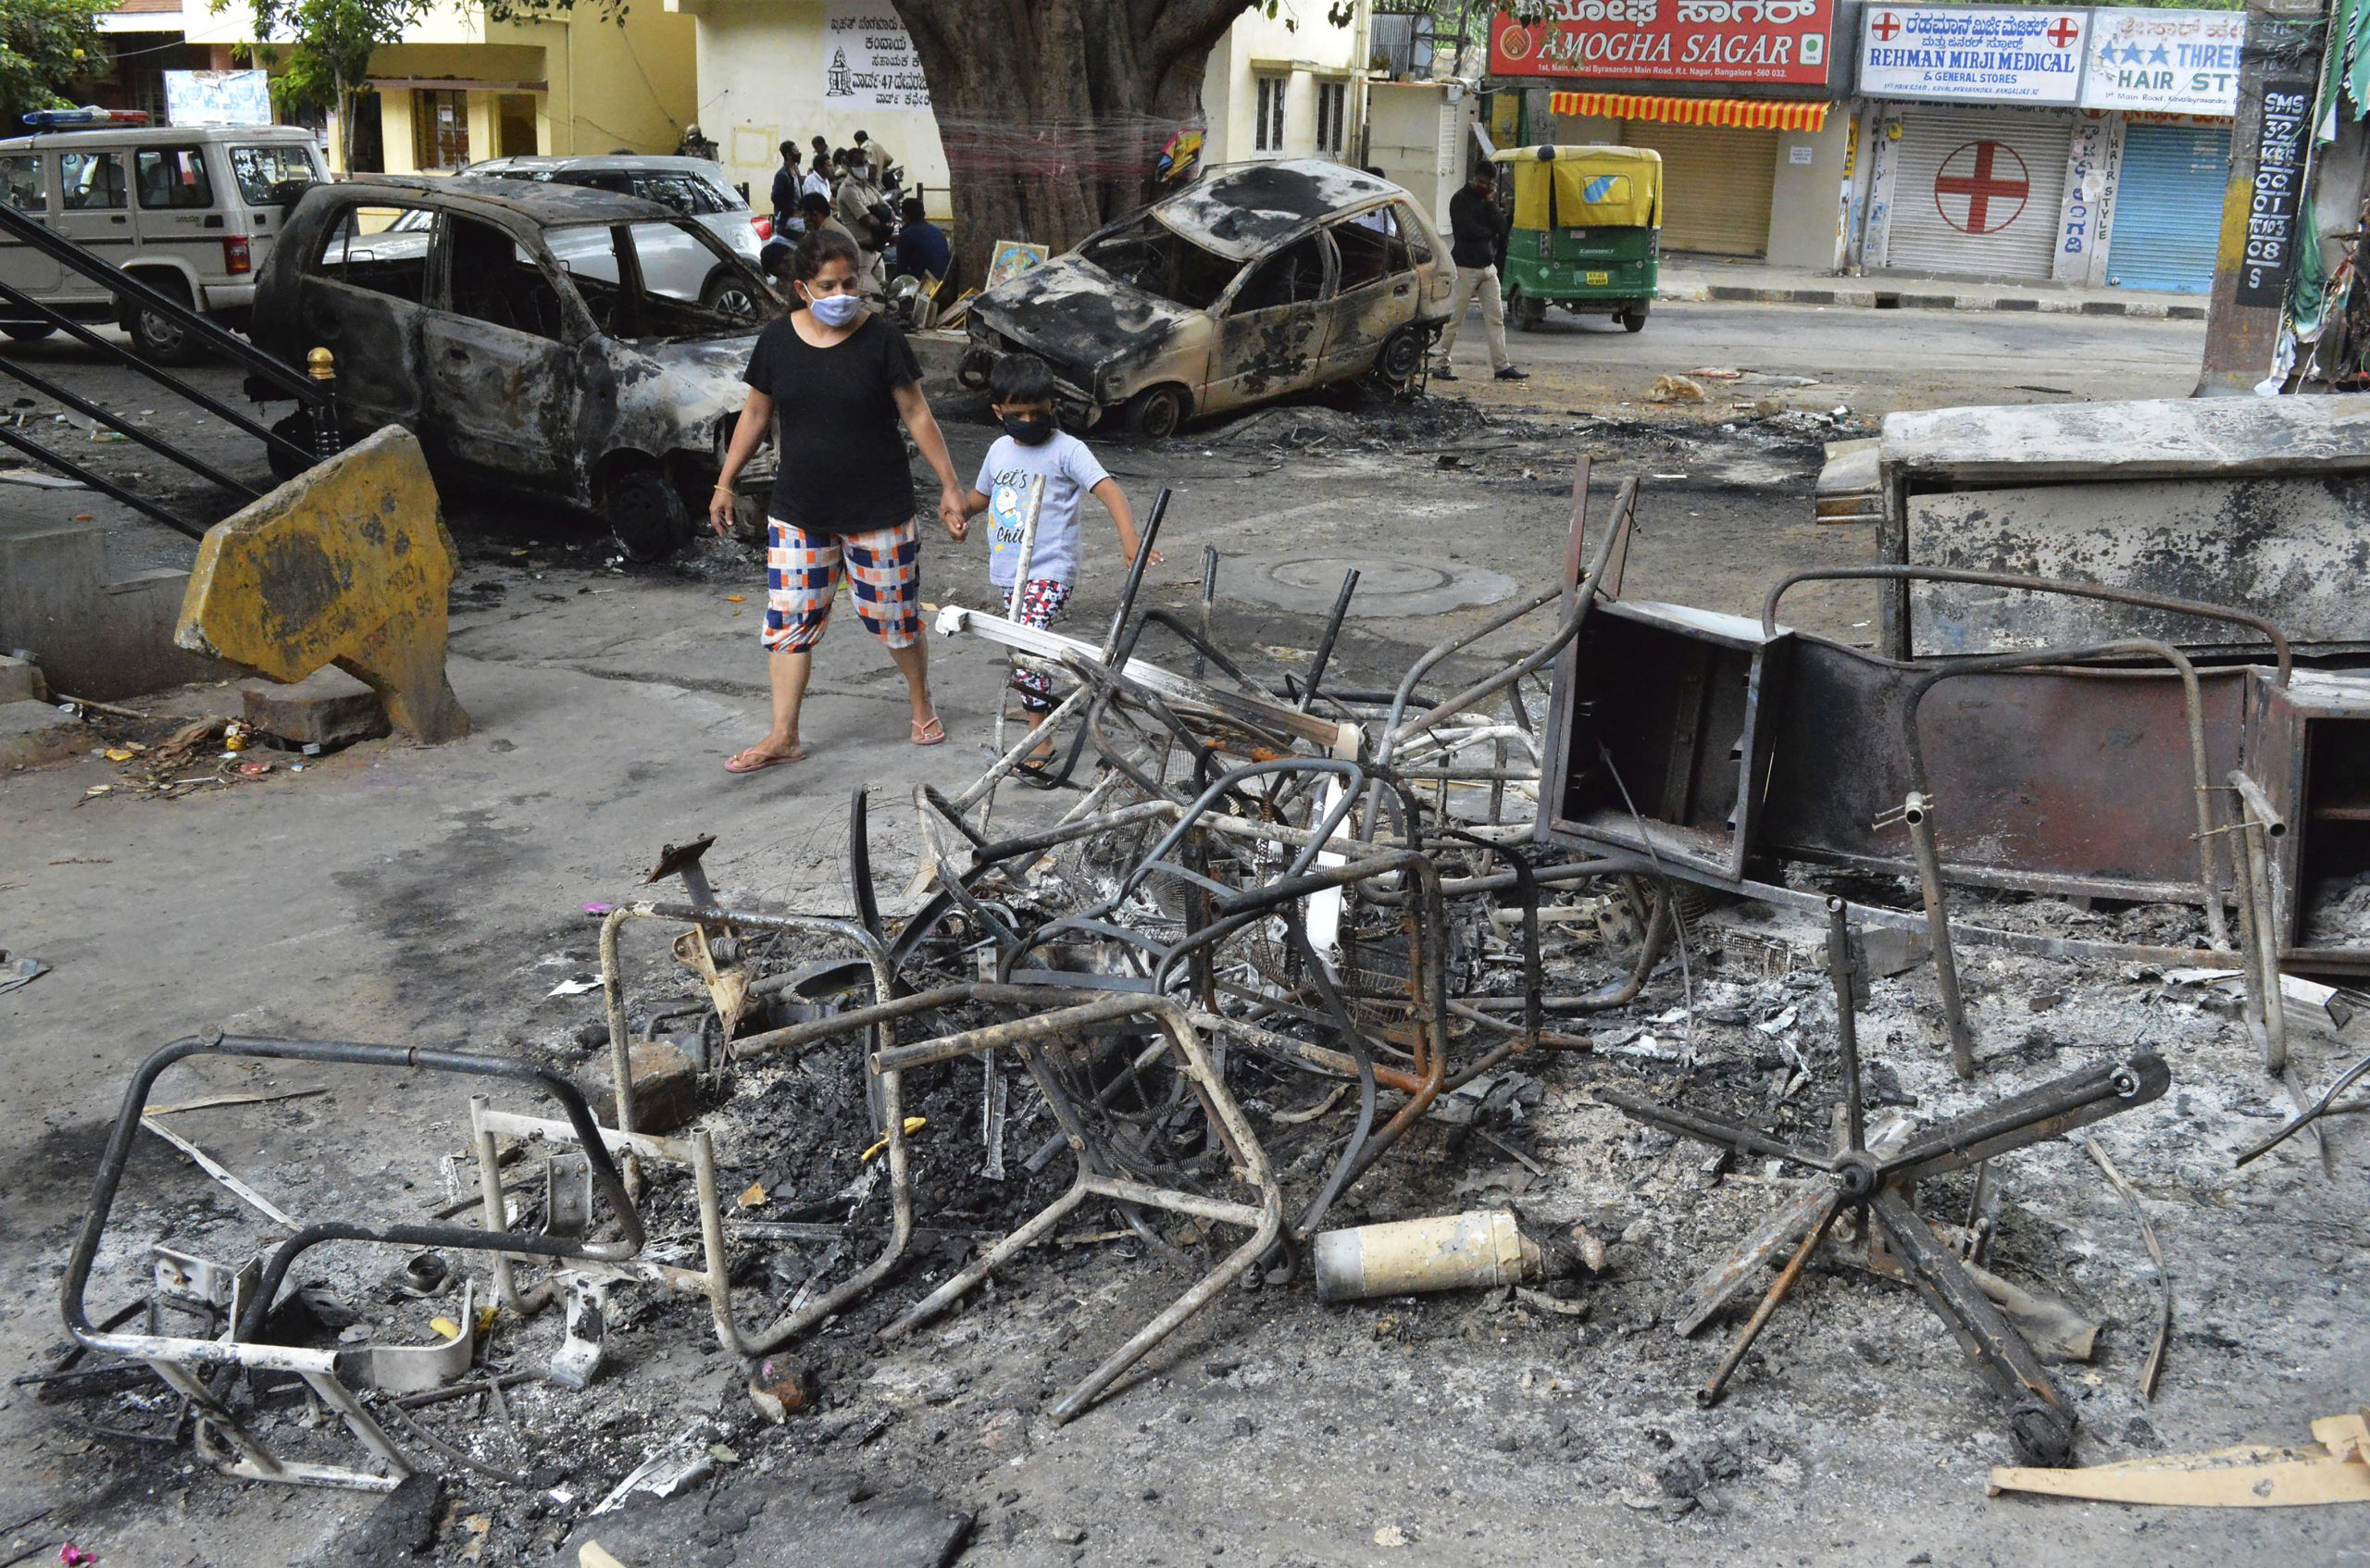 A woman and a child walks past the wreckage of vehicles and furniture burnt during violent protests in Bengaluru, India, Wednesday, Aug. 12, 2020.  (AP Photo)